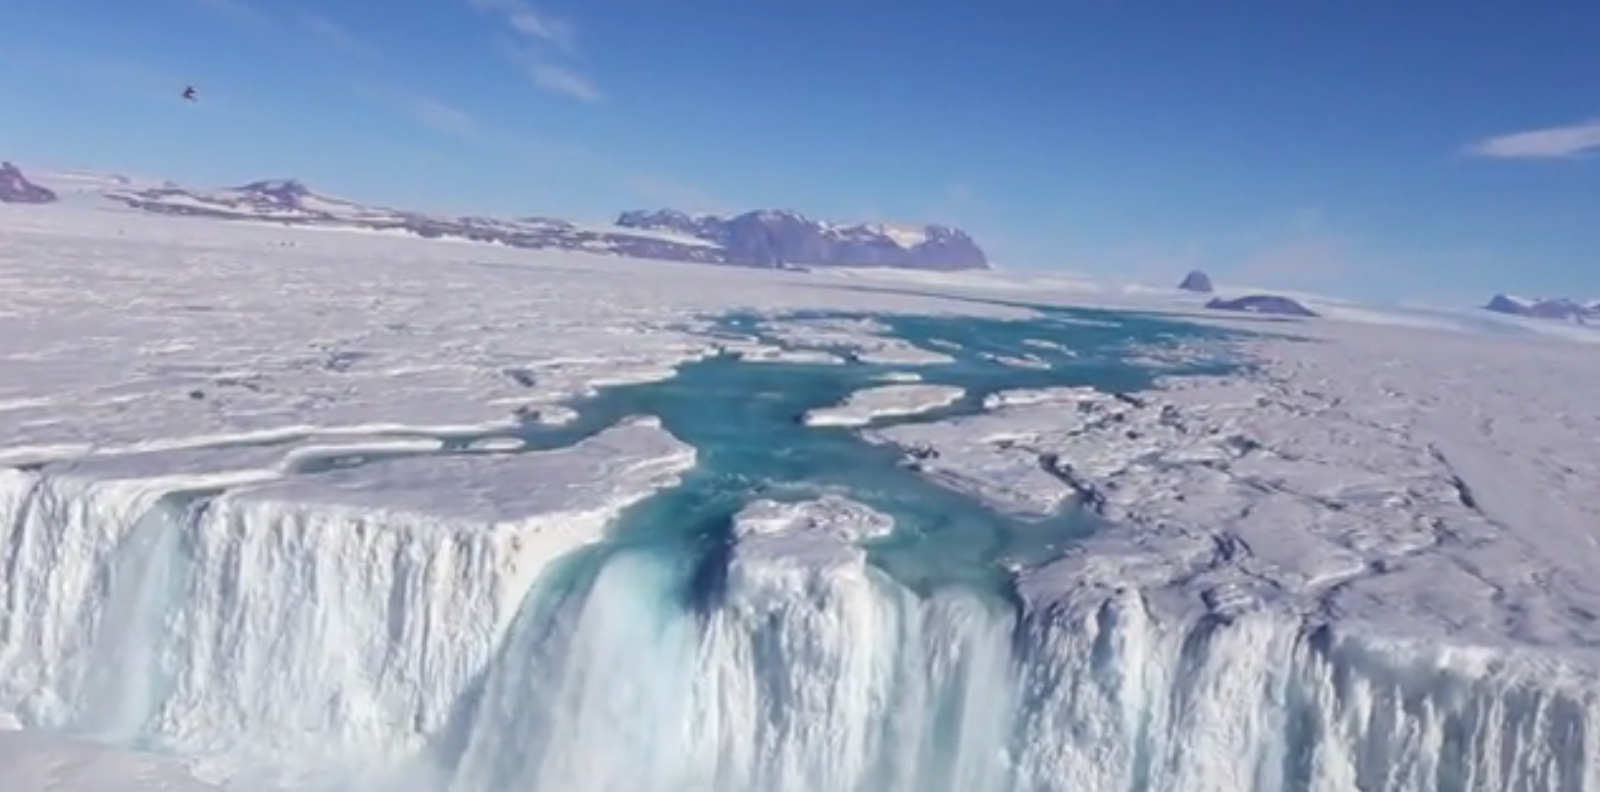 Antarctica waterfall